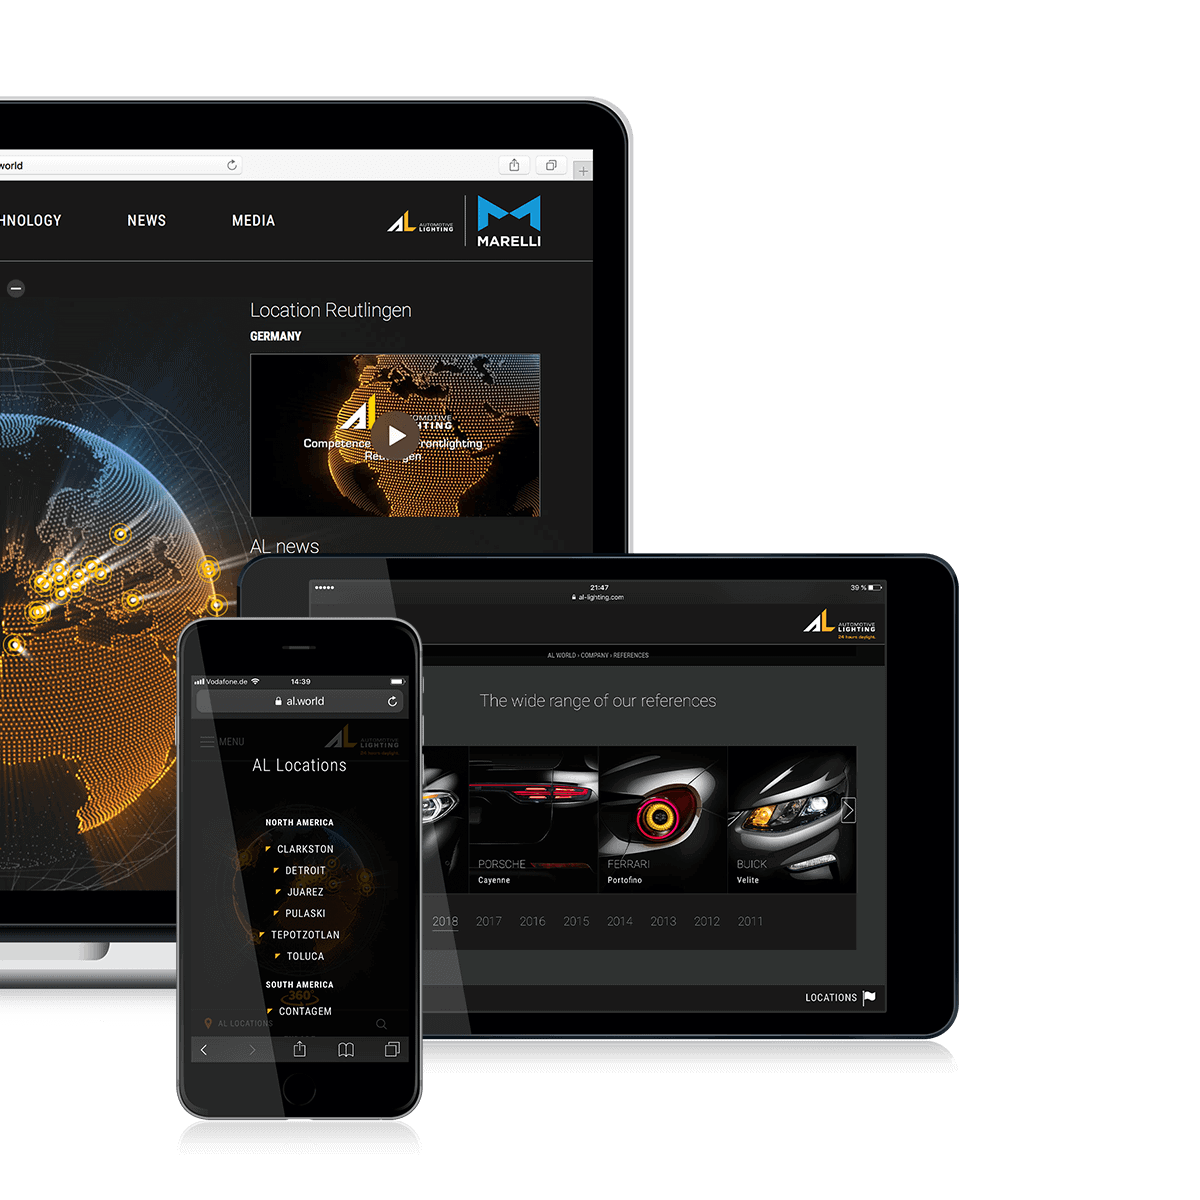 Agentur-Referenzen Marelli Automotive Lighting TYPO3 Website-Relaunch